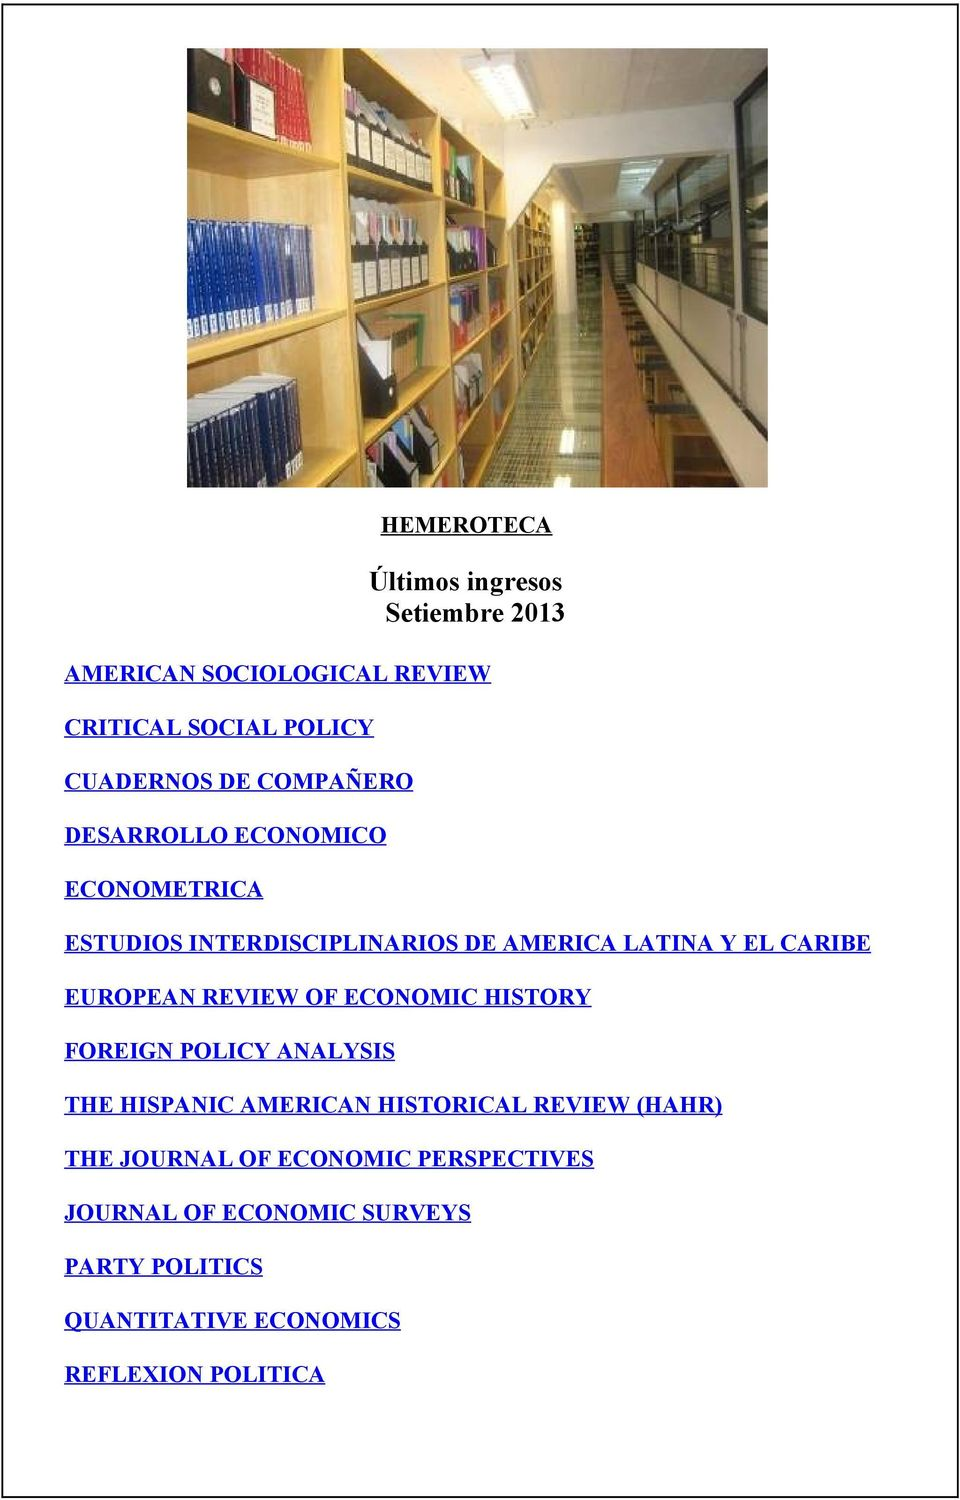 Y EL CARIBE EUROPEAN REVIEW OF ECONOMIC HISTORY FOREIGN POLICY ANALYSIS THE HISPANIC AMERICAN HISTORICAL REVIEW